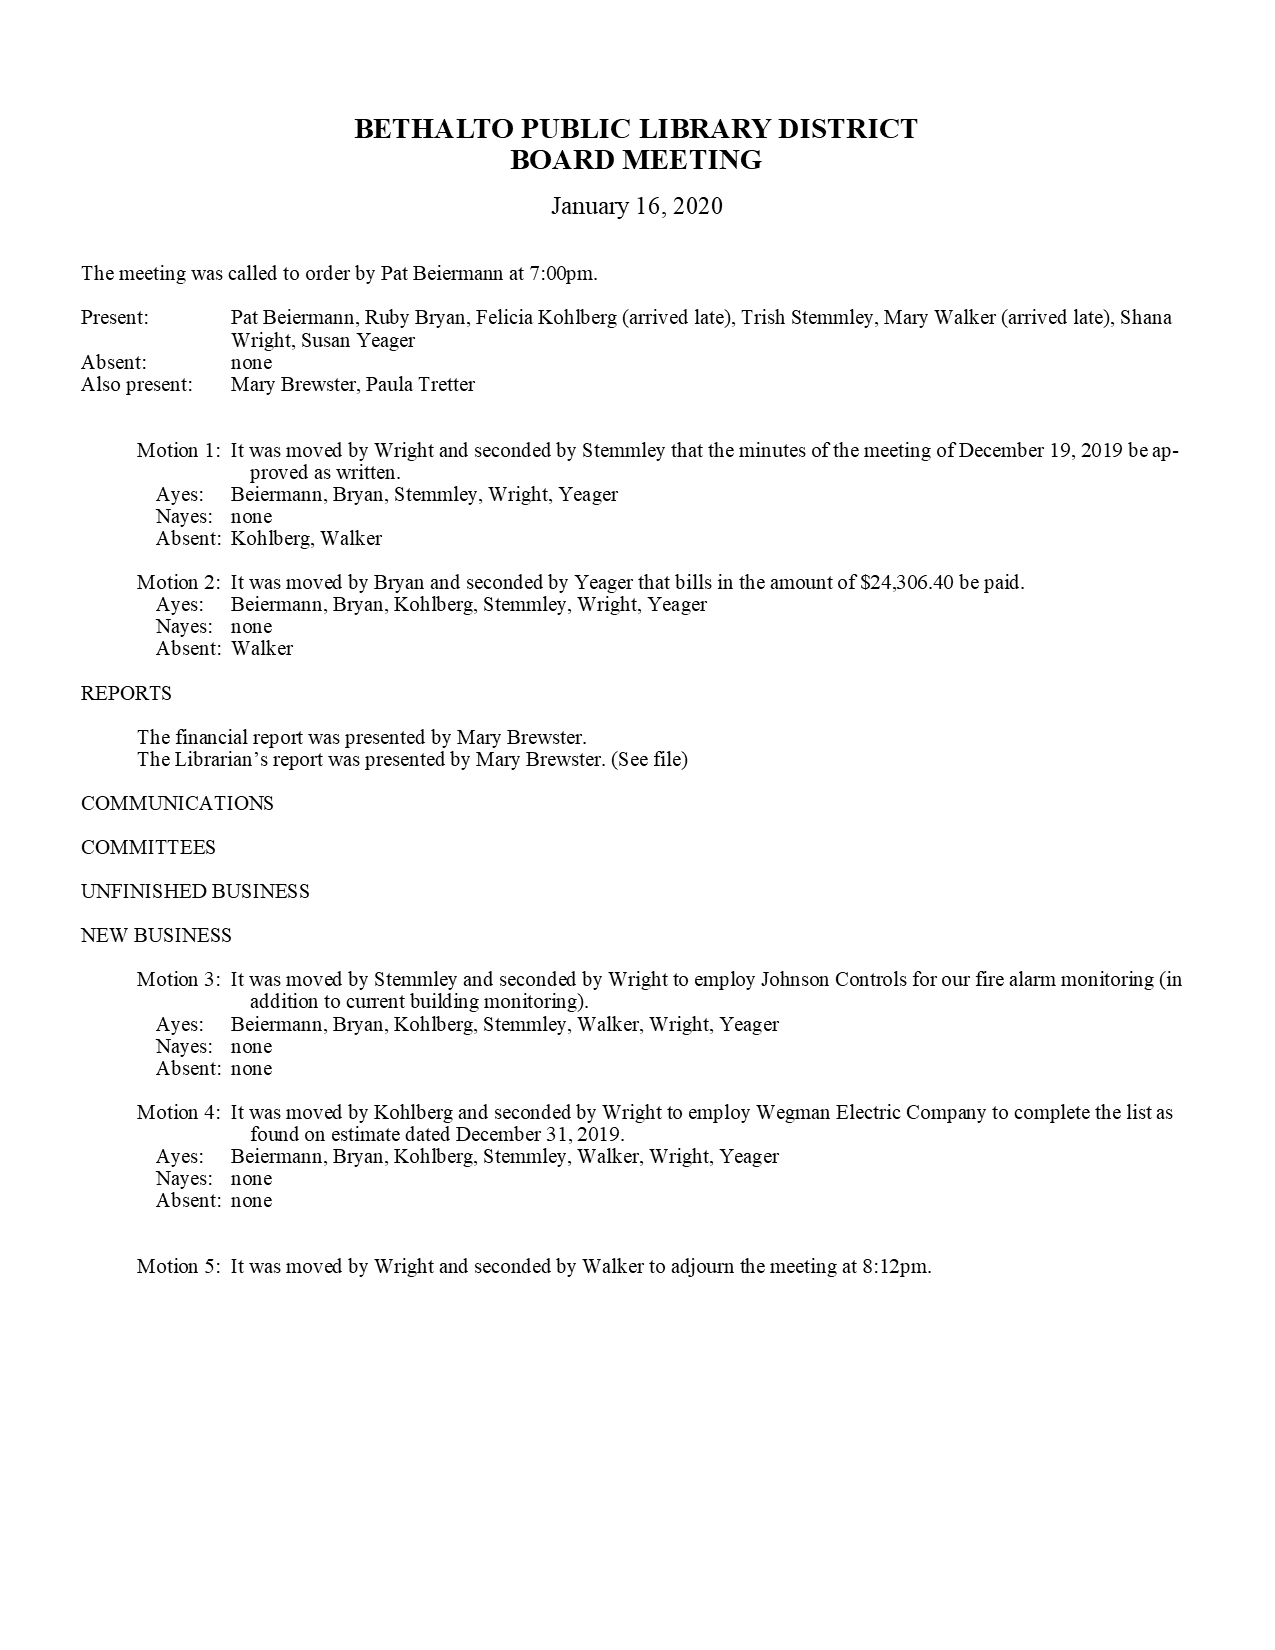 Board Minutes January 16, 2020.png